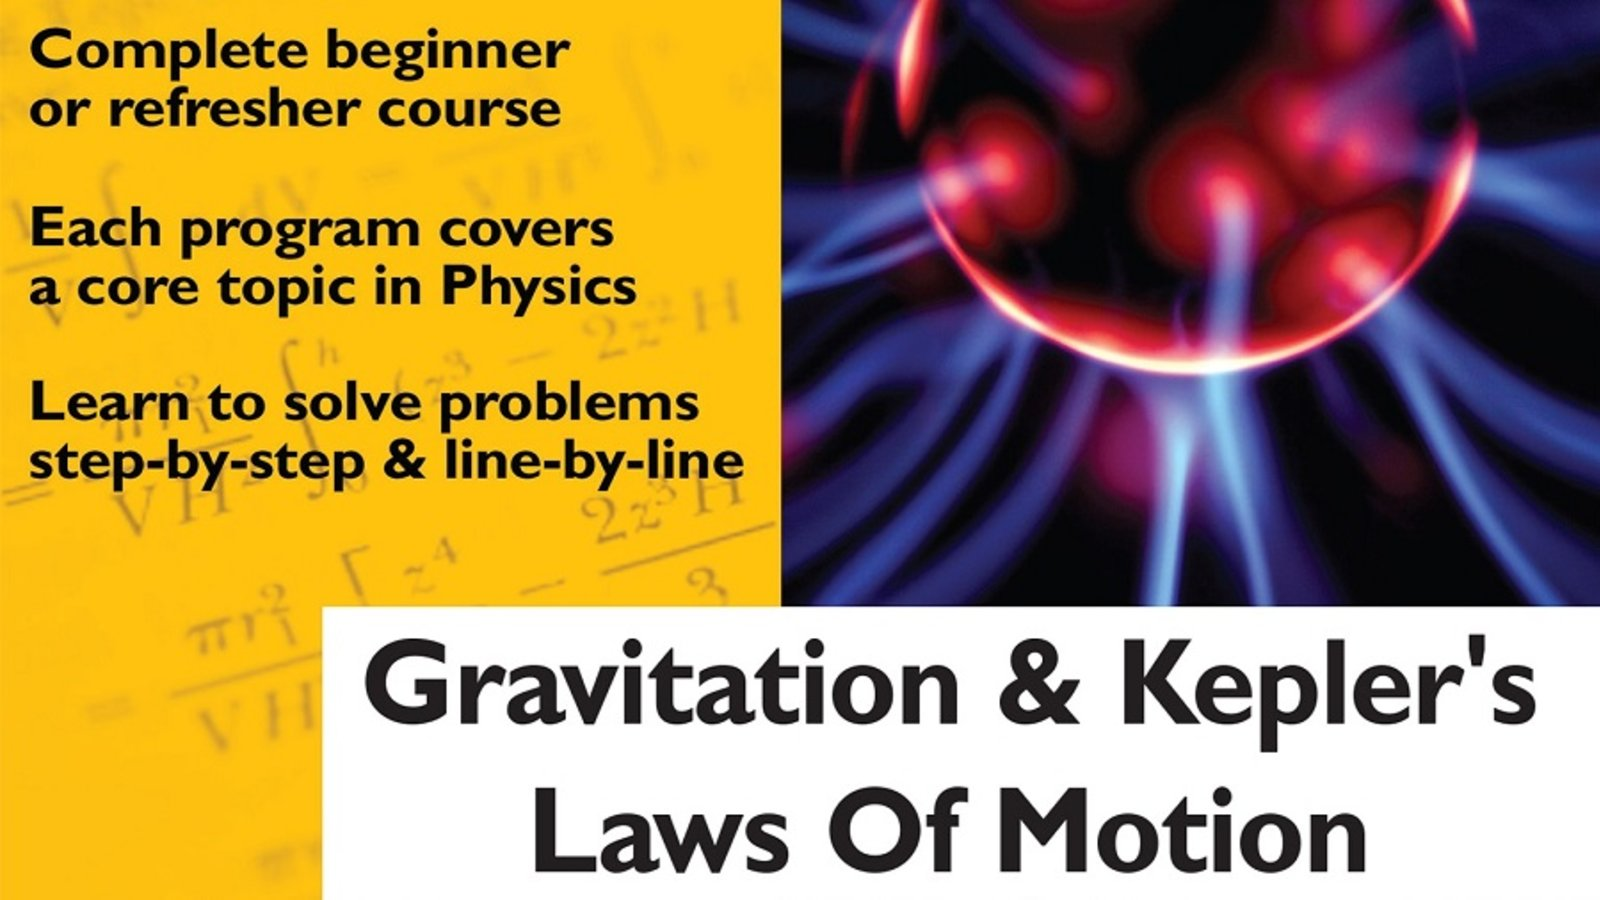 Gravitation and Kepler's Laws Of Motion